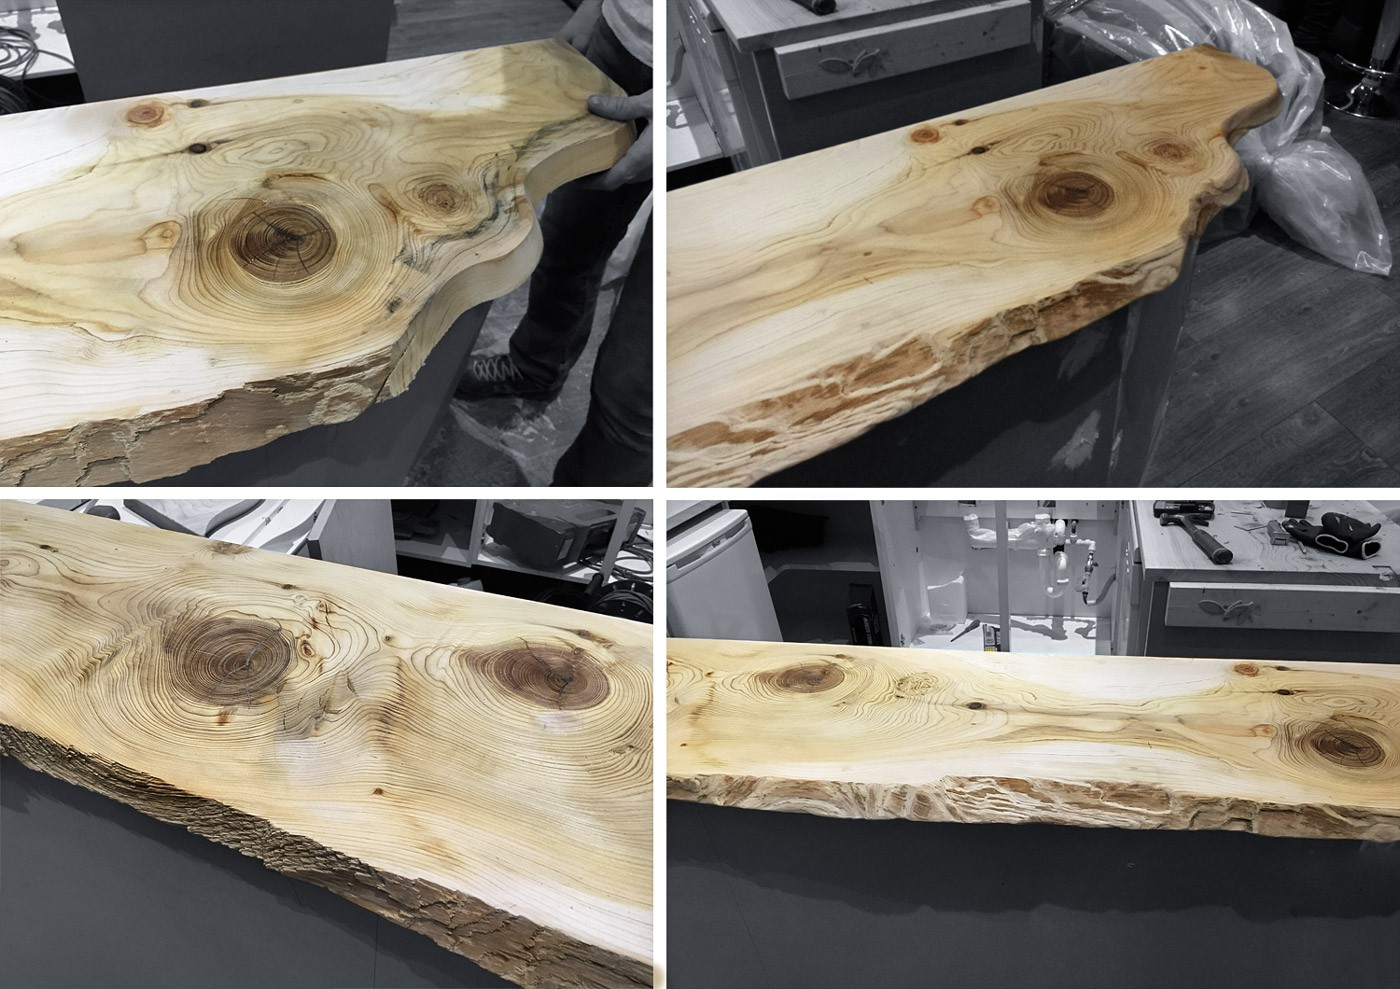 Various stages of sanding the cedar wood for the juice bar counter top